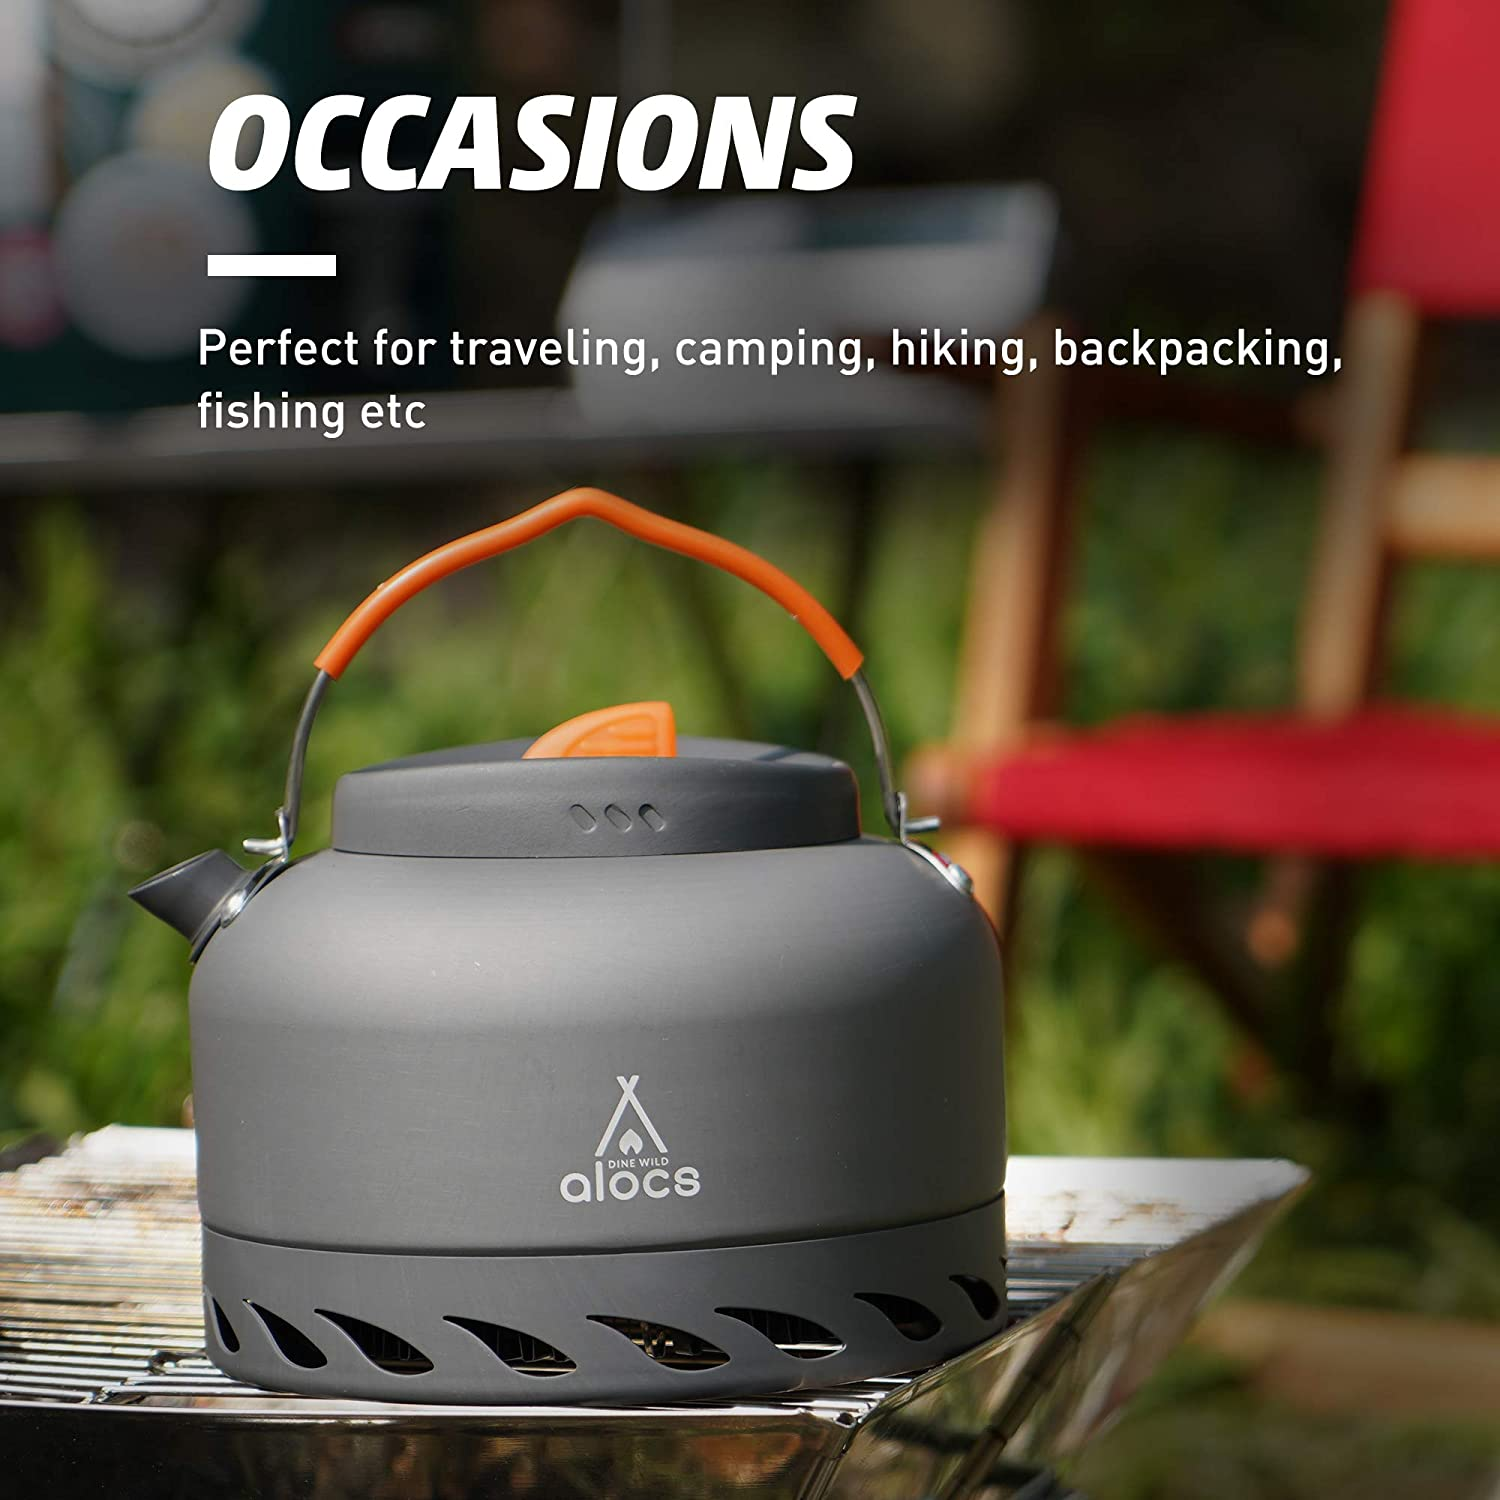 Alocs 1.3L Camping Kettle With Heat Exchanger Aluminum Portable Tea Kettle Compact Outdoor Hiking Camping Picnic Water Kettle Lightweight Teapot Coffee Pot